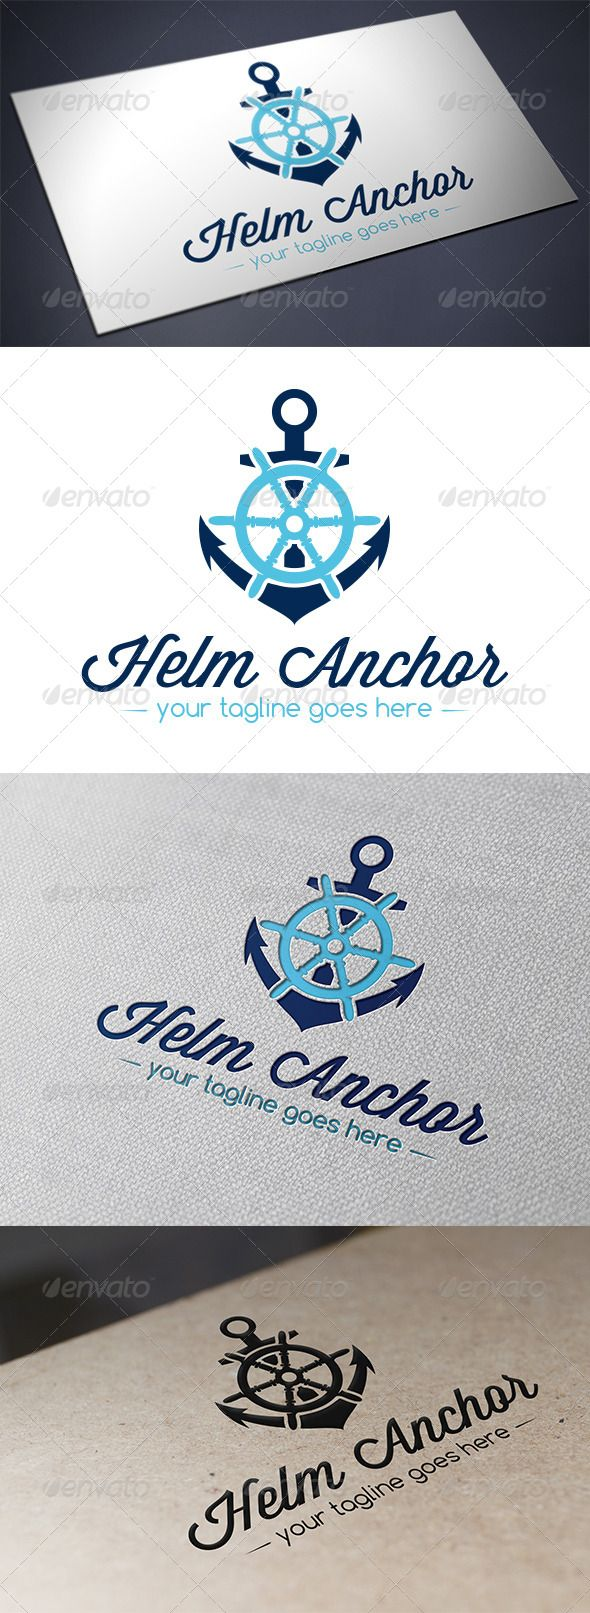 Helm Anchor Logo Template  #GraphicRiver         - Three color version: color, greyscale and single color.   - The logo is 100% resizable.   - You can change text and colors very easy using the named and organized layers that includes the file.   - The typography used is Wisdom Script